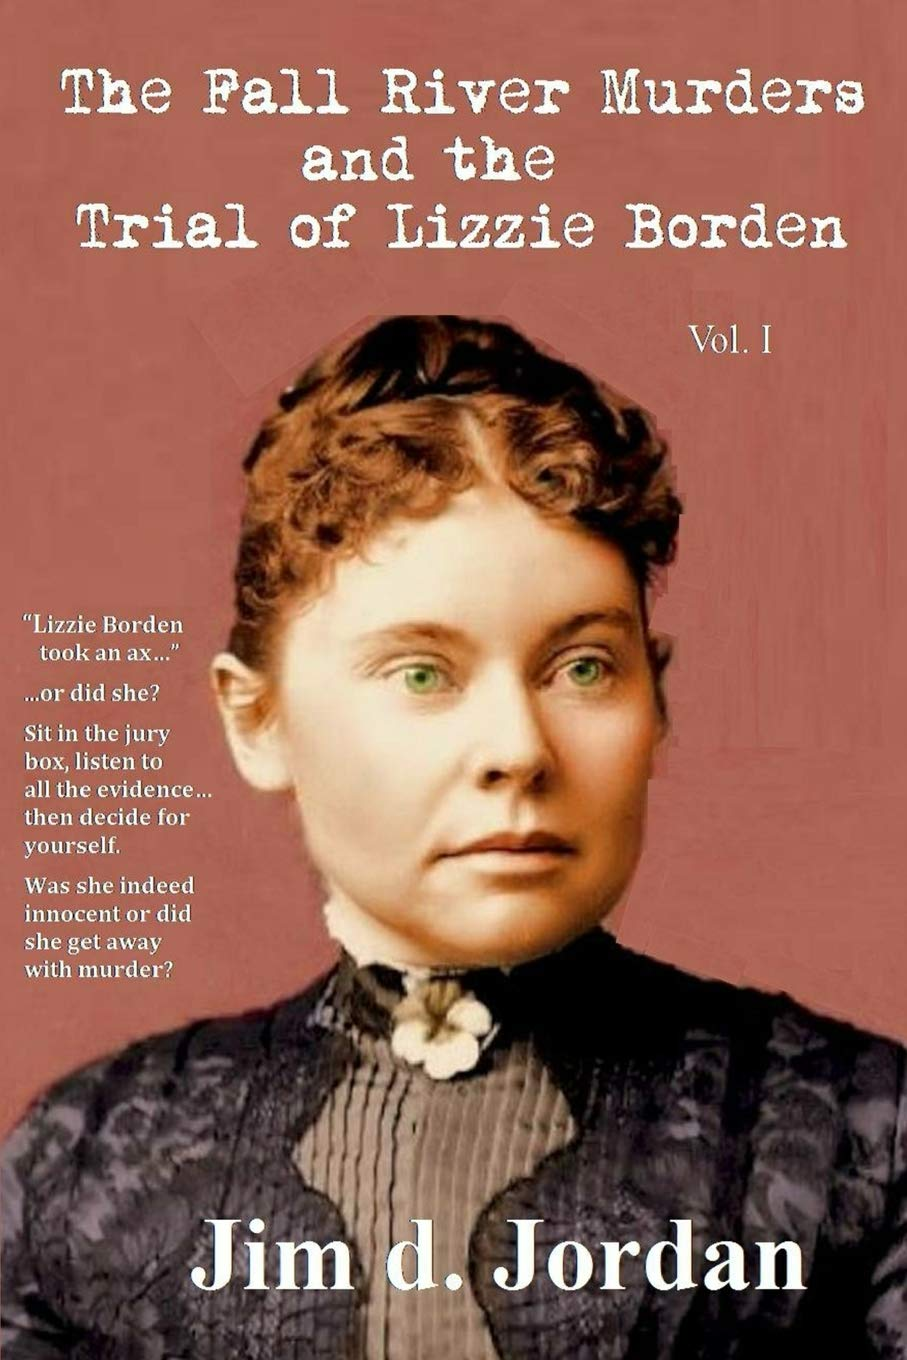 The Fall River Murders and The Trial of Lizzie Borden Vol I